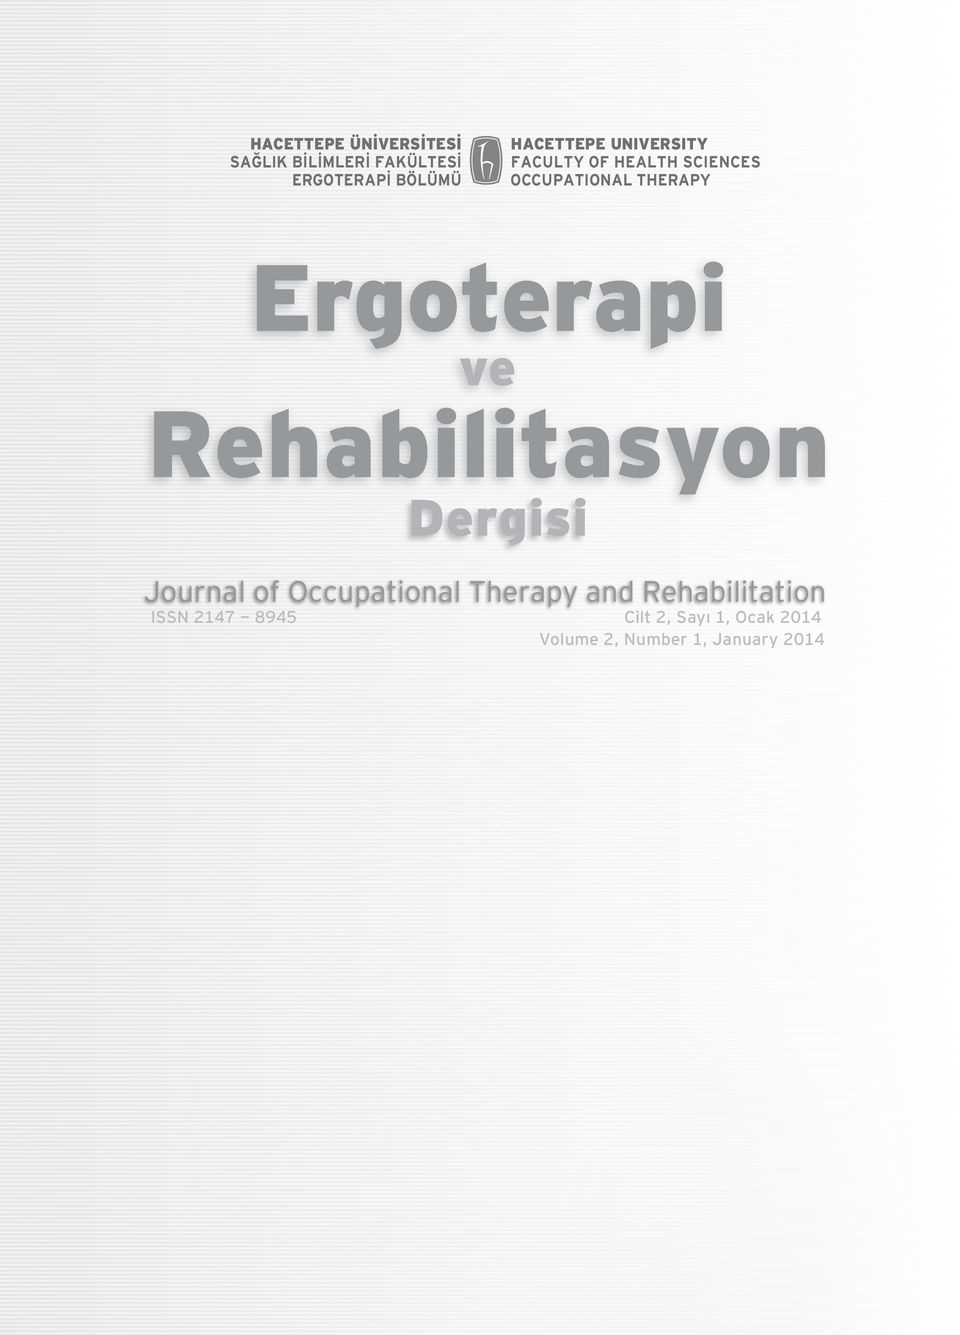 Ergoterapi ve Rehabilitasyon Dergisi Journal of Occupational Therapy and